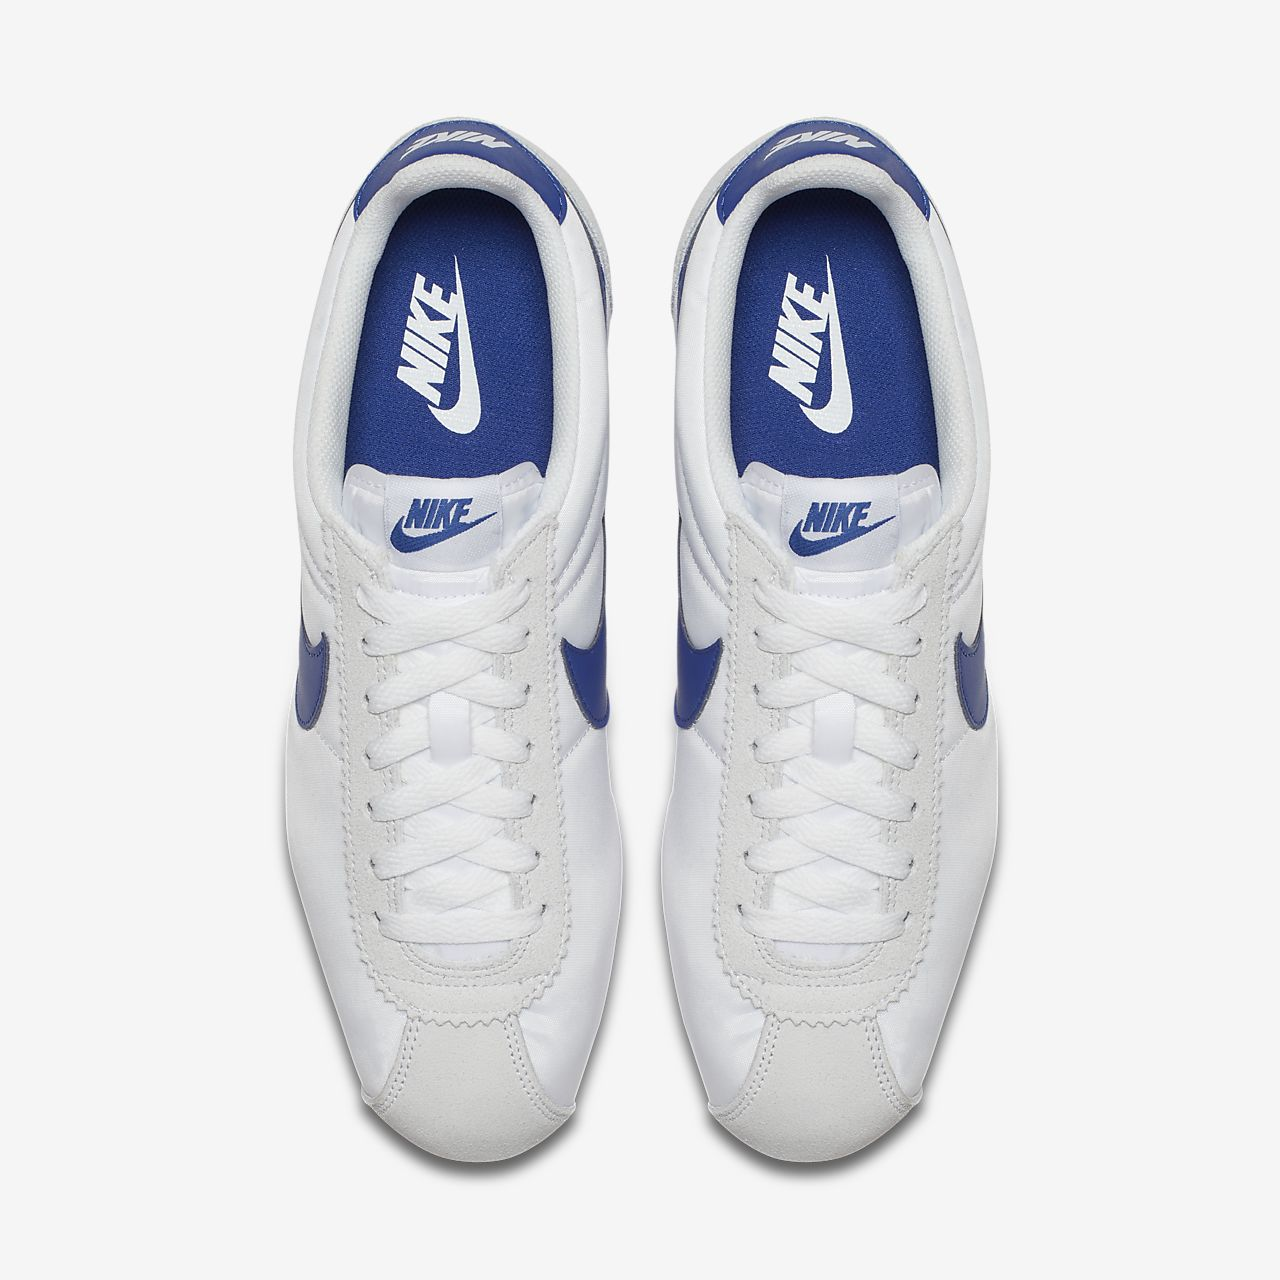 new styles b1a81 2d19b ... Chaussure mixte Nike Classic Cortez Nylon